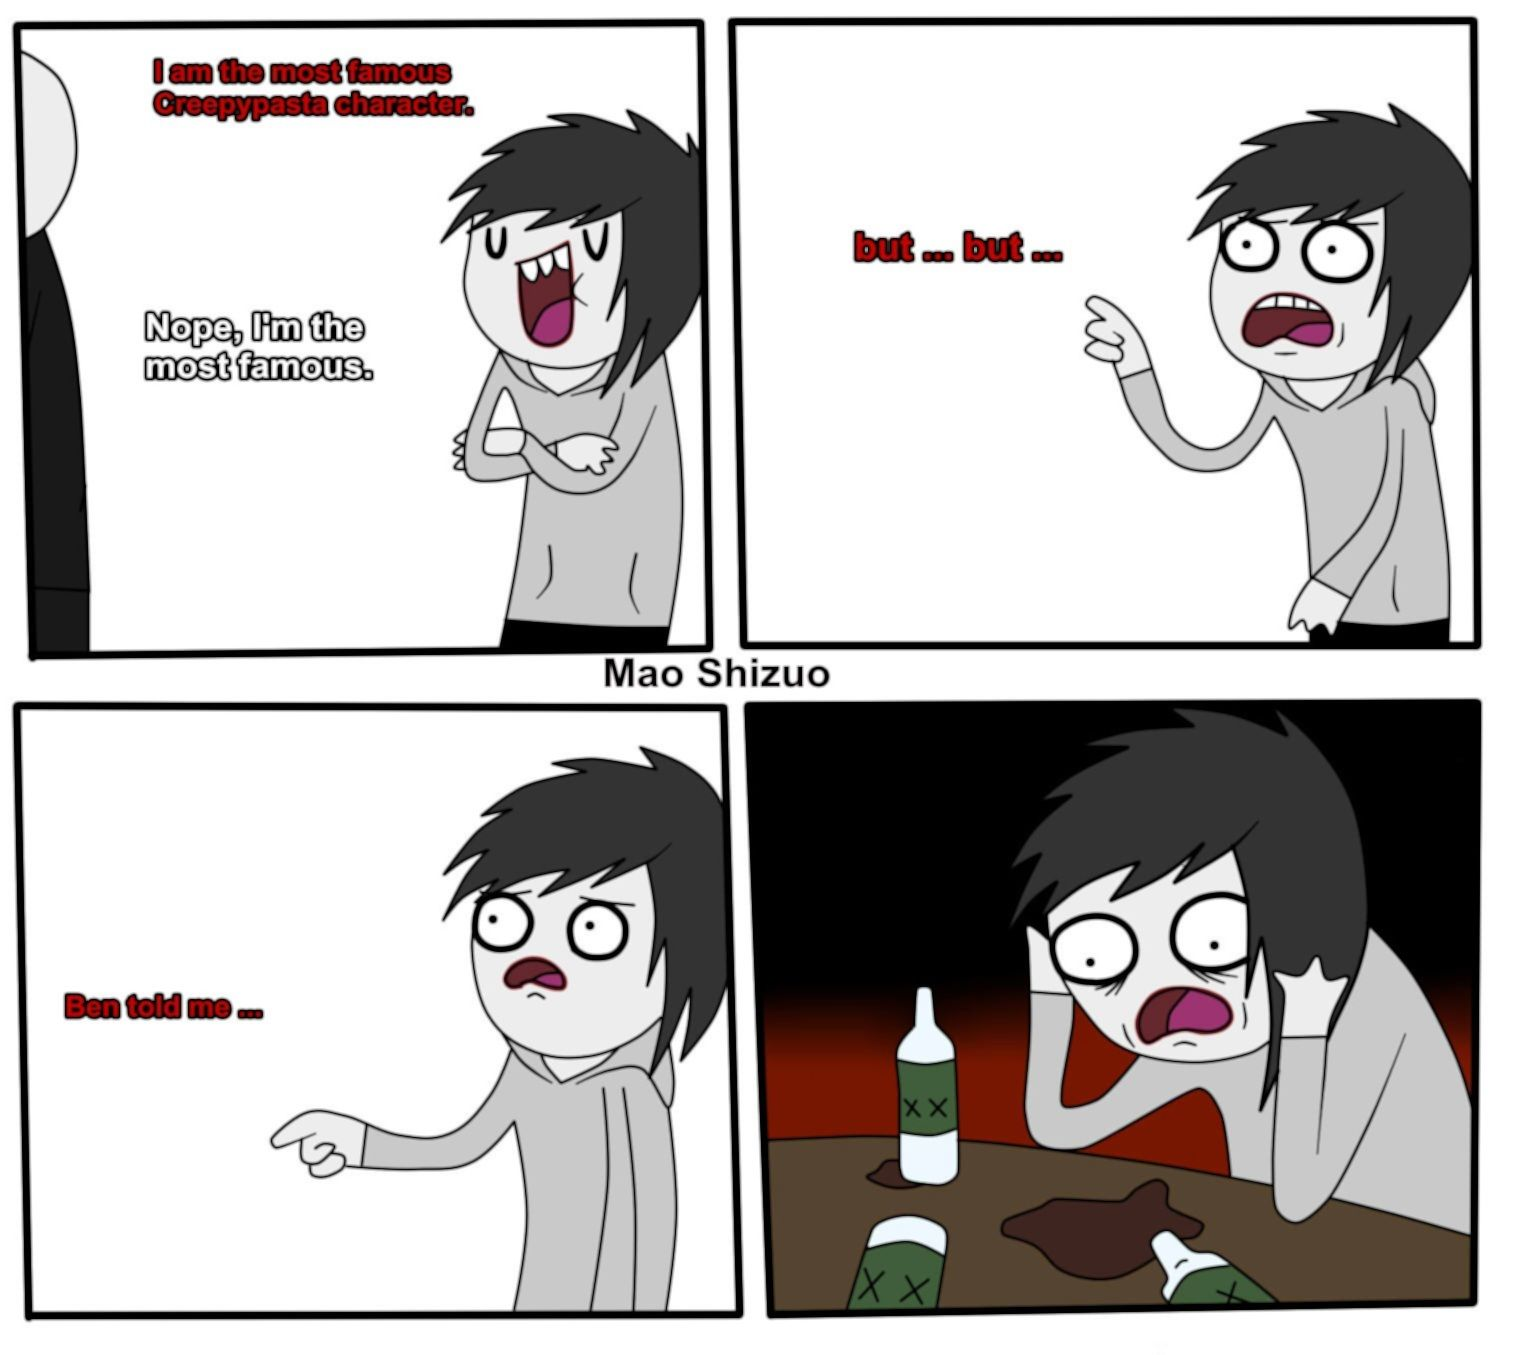 Jeff and Slenderman (Meme) | Jeff the Killer | Pinterest ...